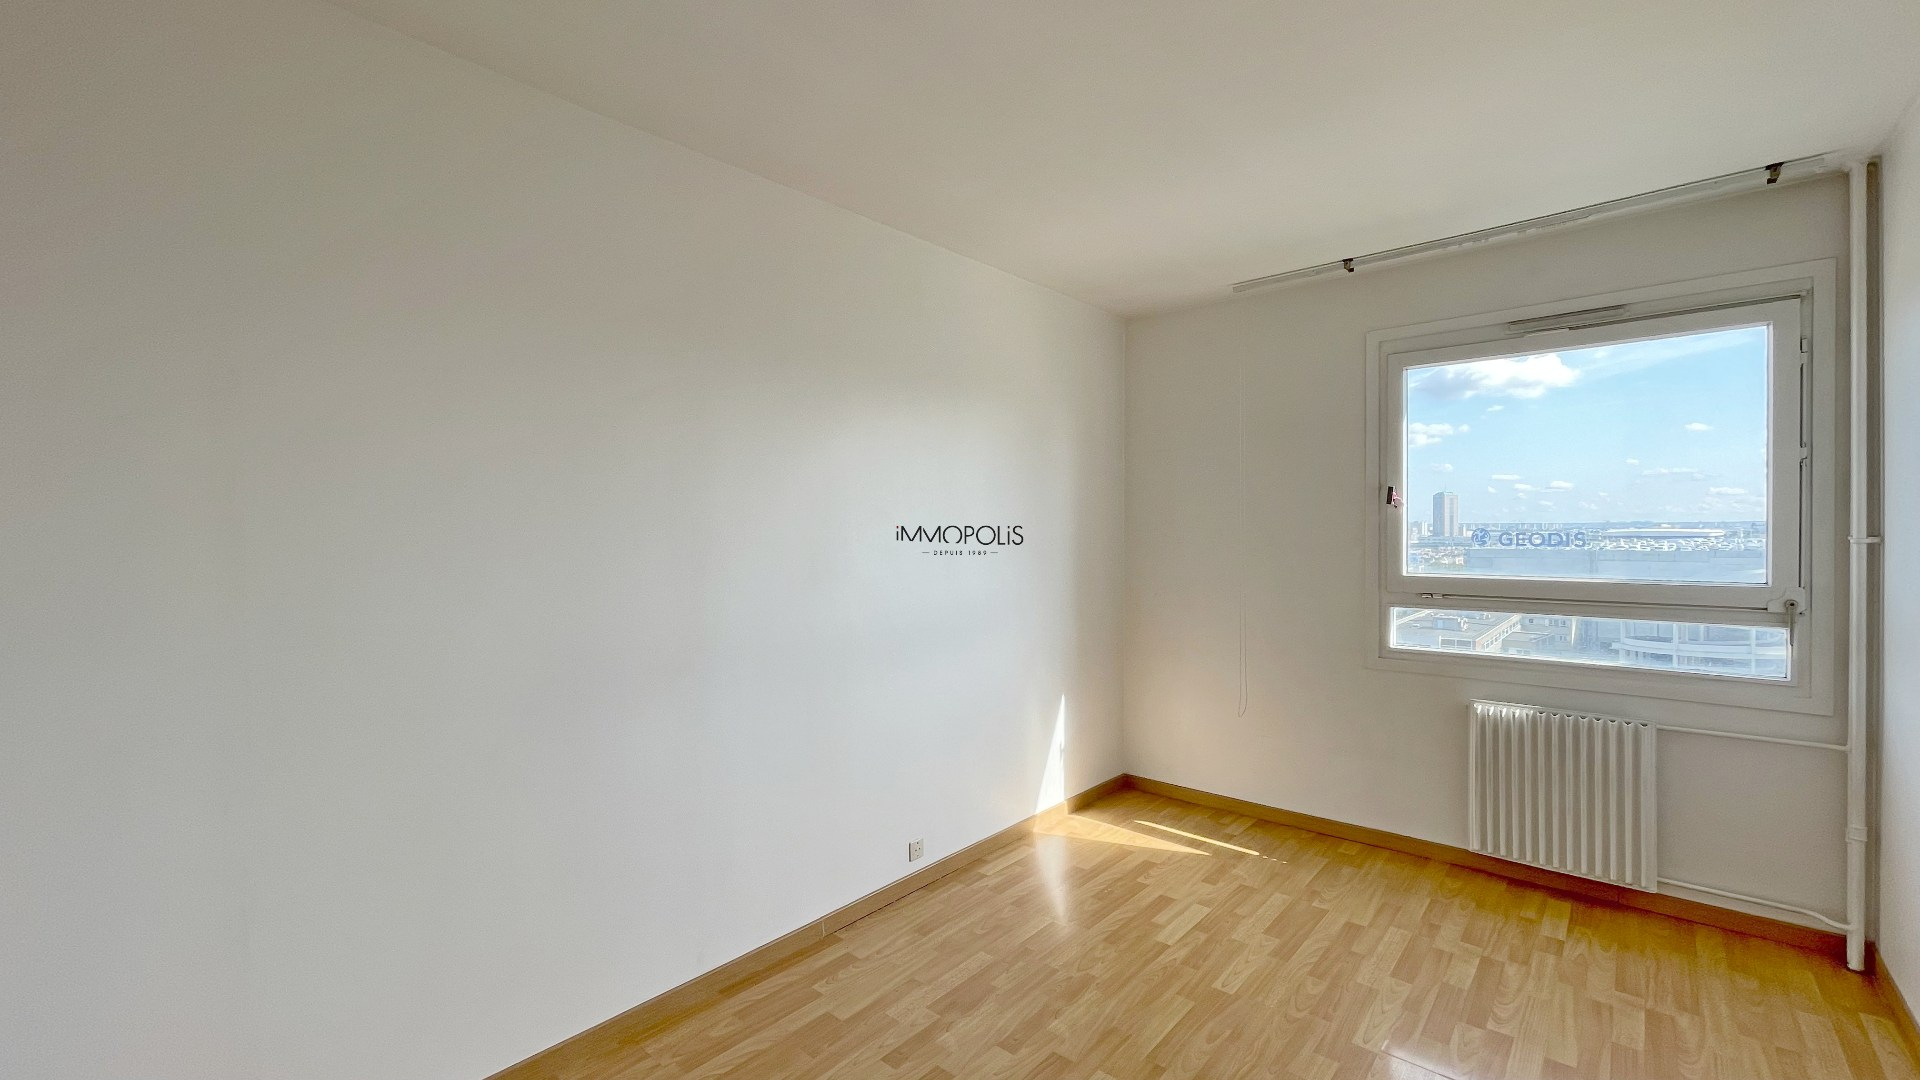 3 room apartment with unobstructed view of 63.45m2 sold with a box! 4